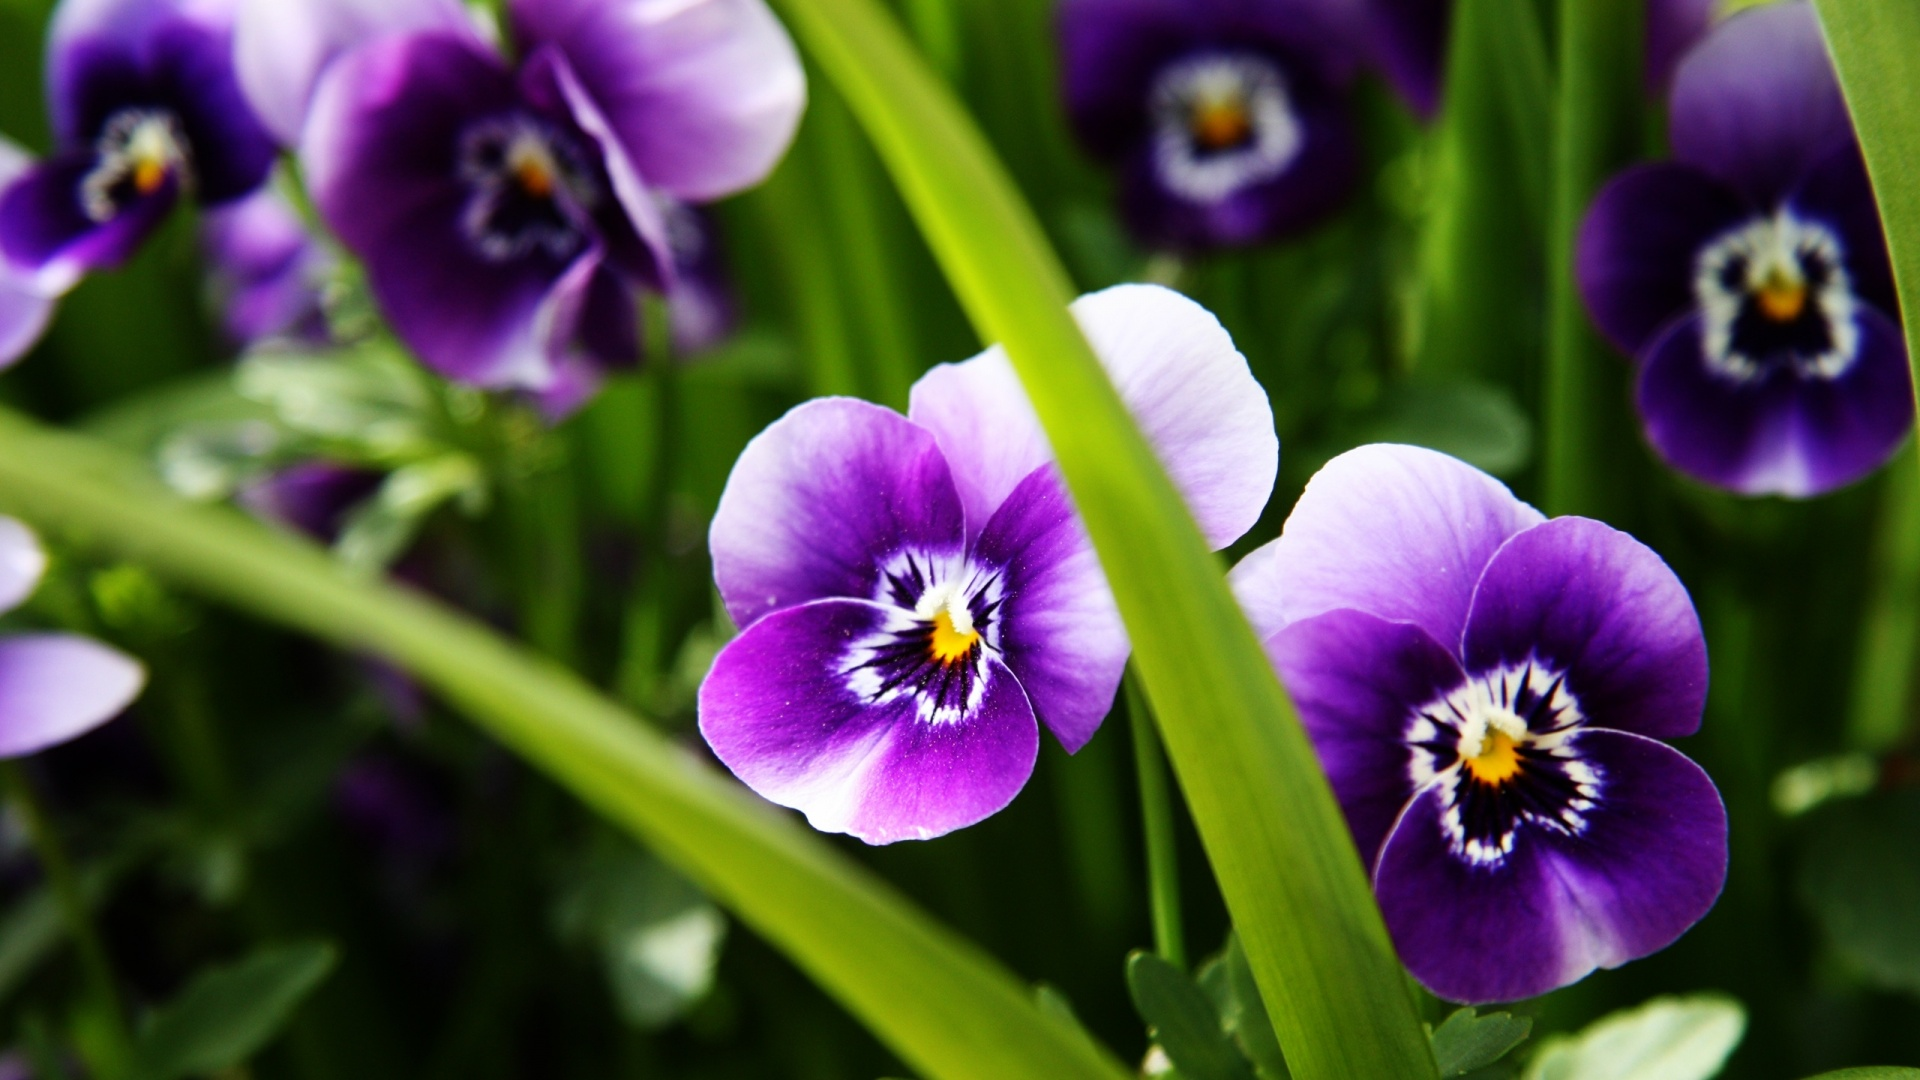 Names of purple flowers with pictures 1 widescreen wallpaper names of purple flowers with pictures widescreen wallpaper mightylinksfo